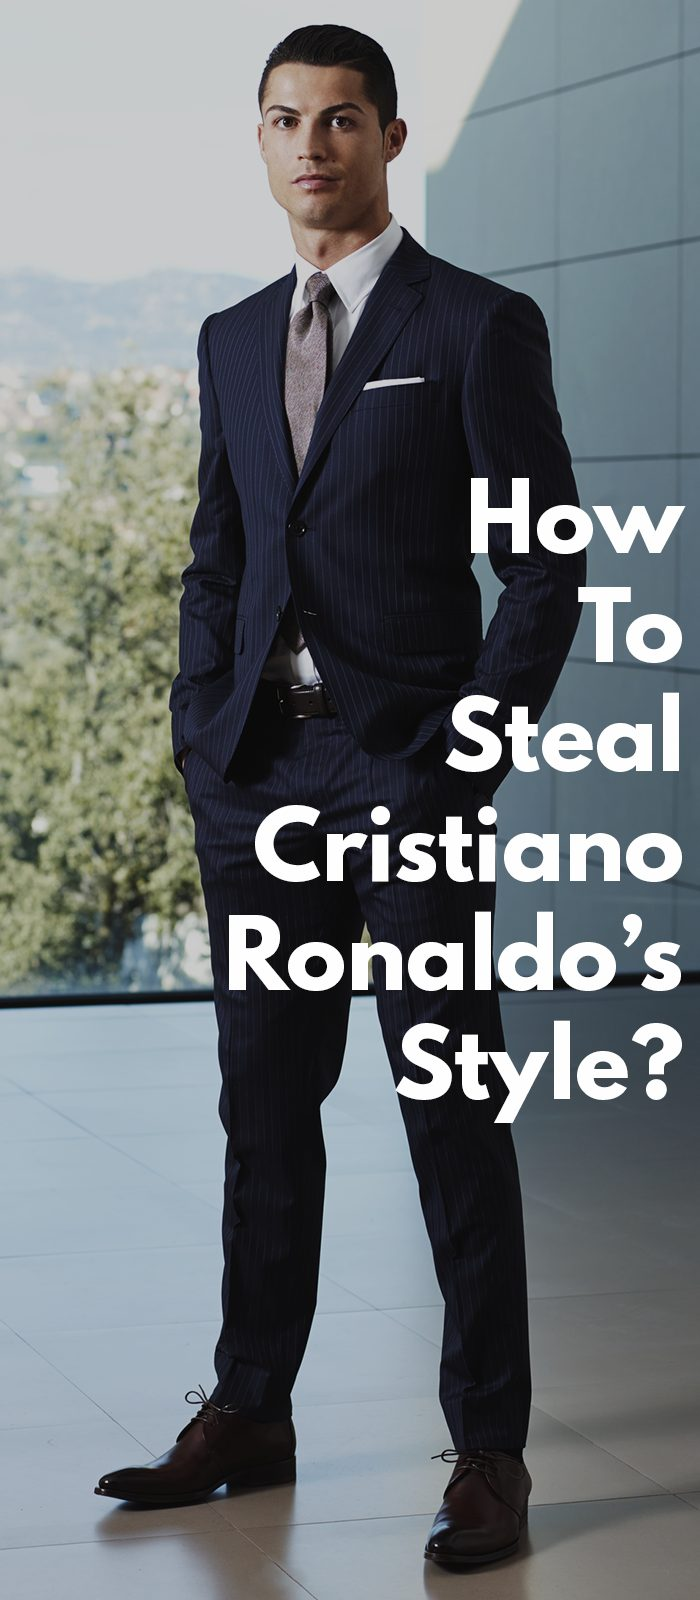 How To Steal Cristiano Ronaldo's Style